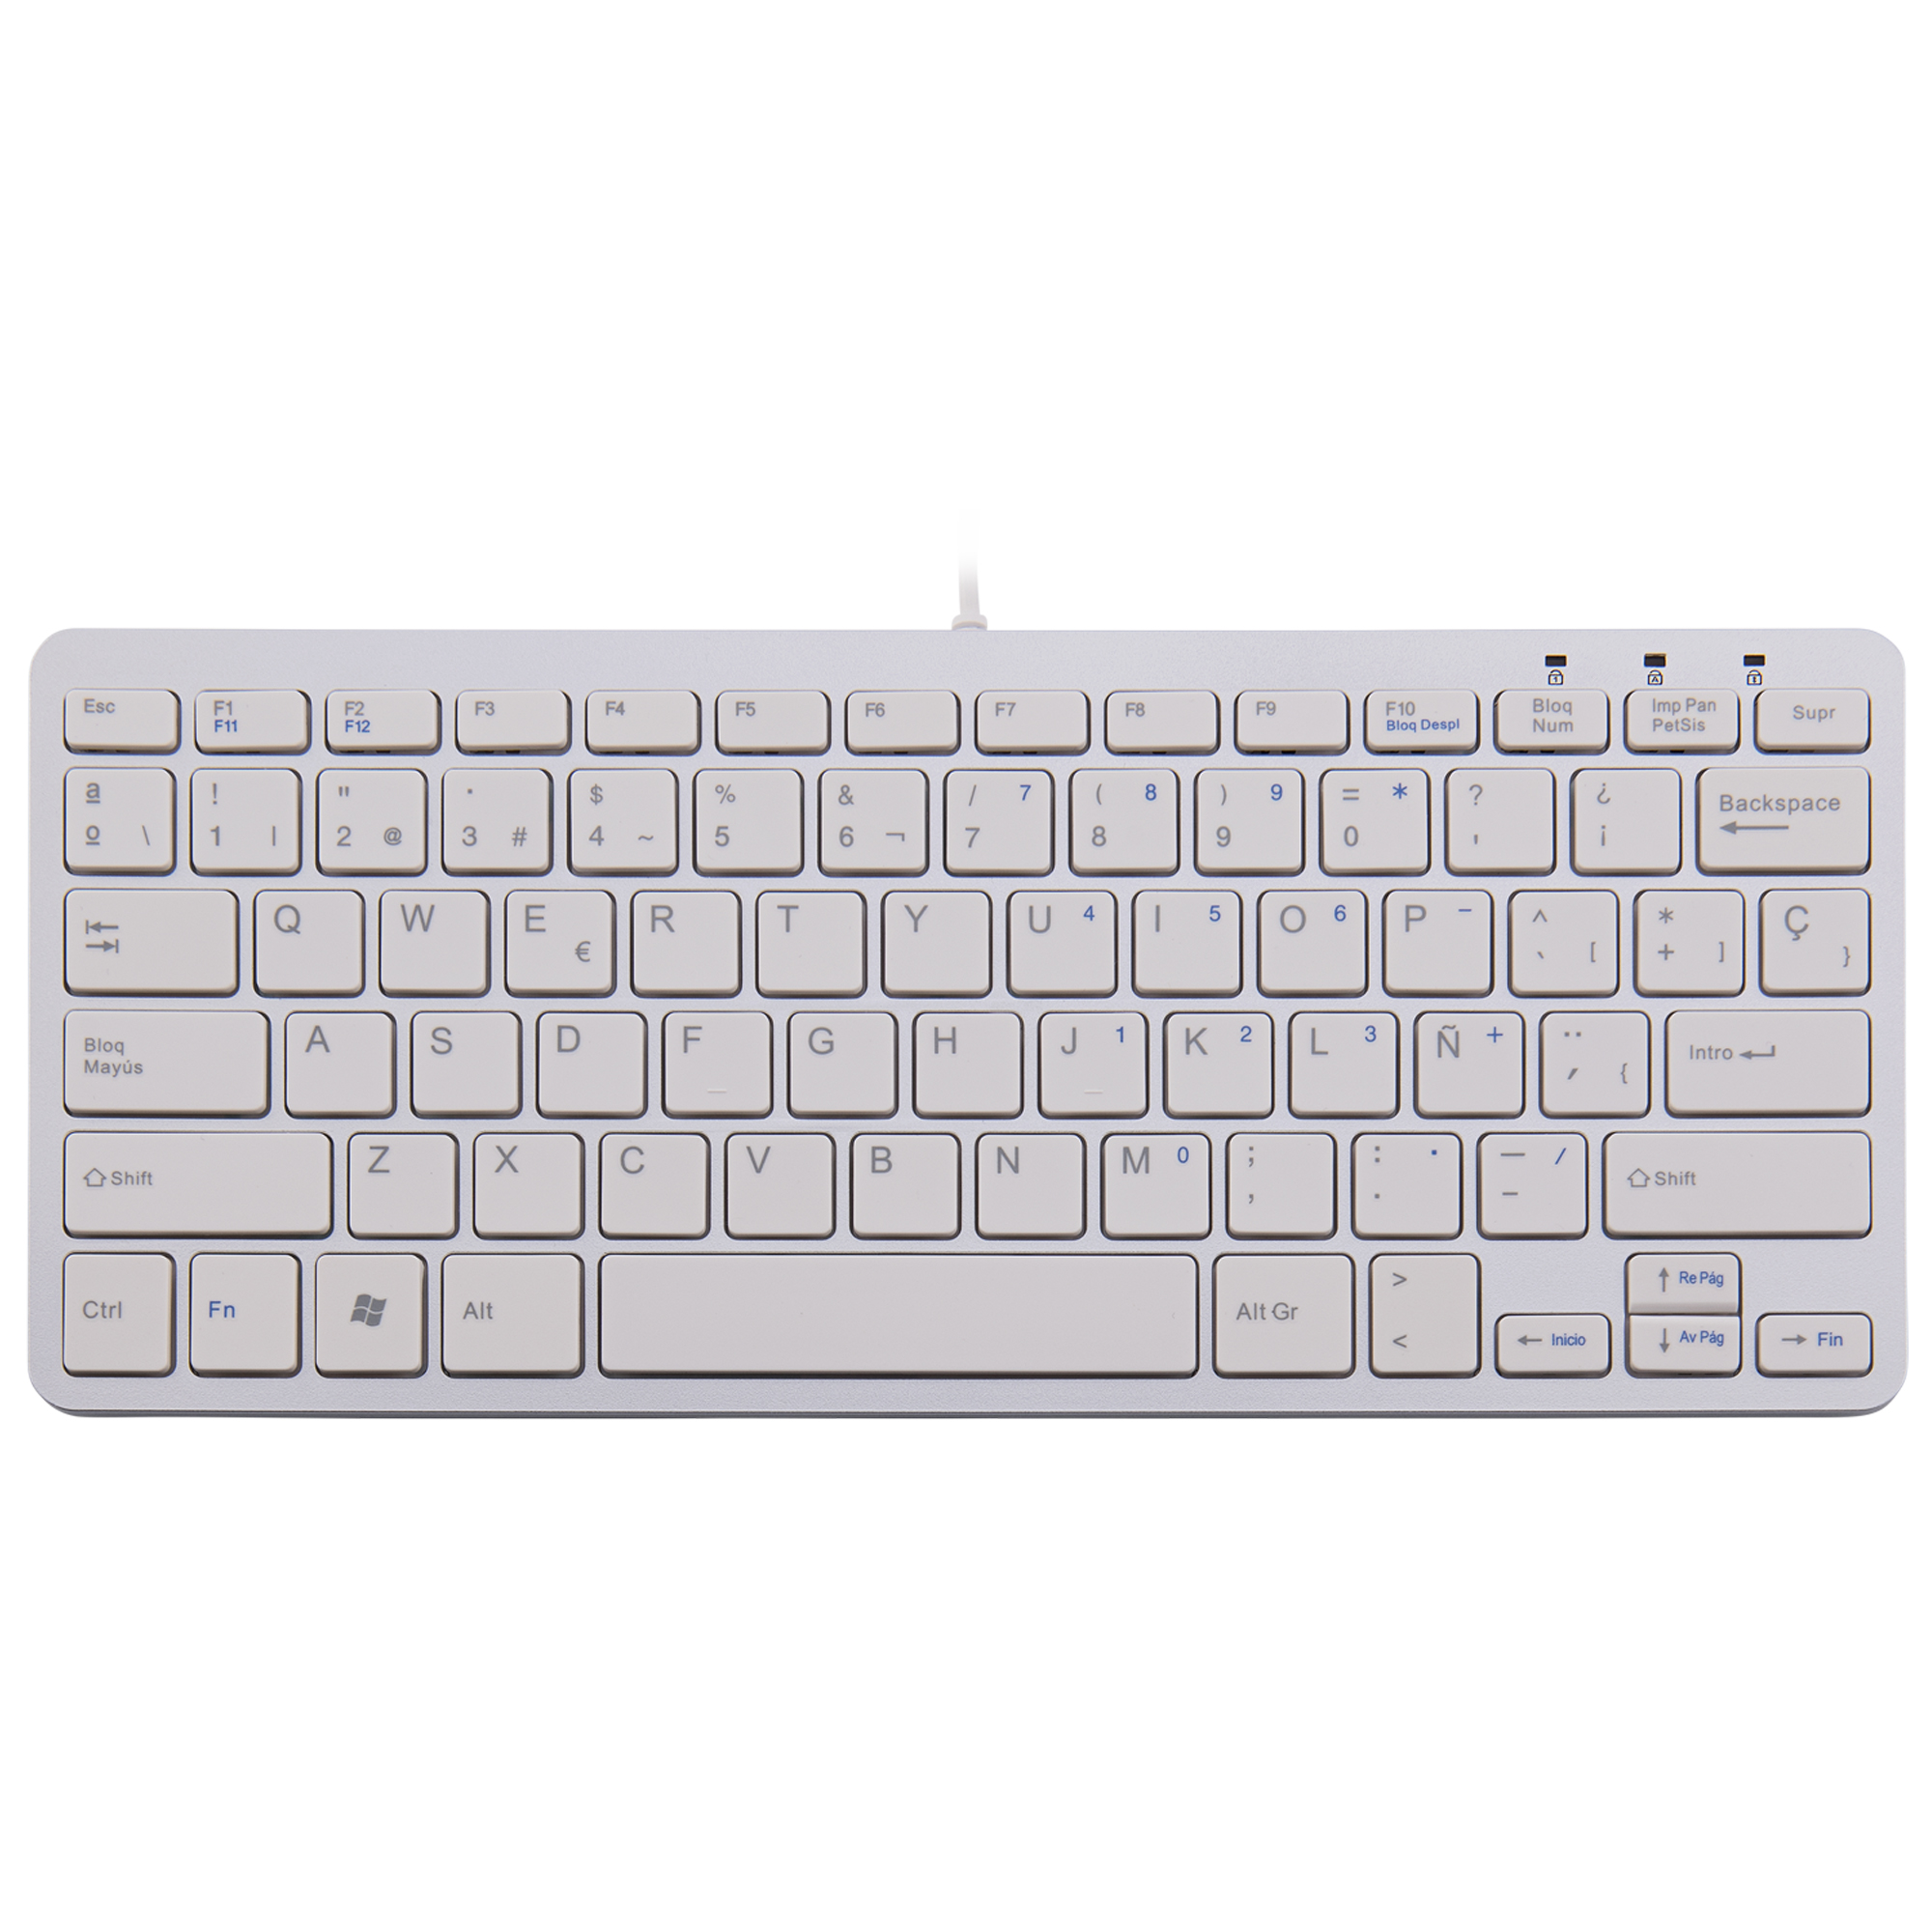 R-Go Clavier Compact, QWERTY (ES), blanc, filaire - 1